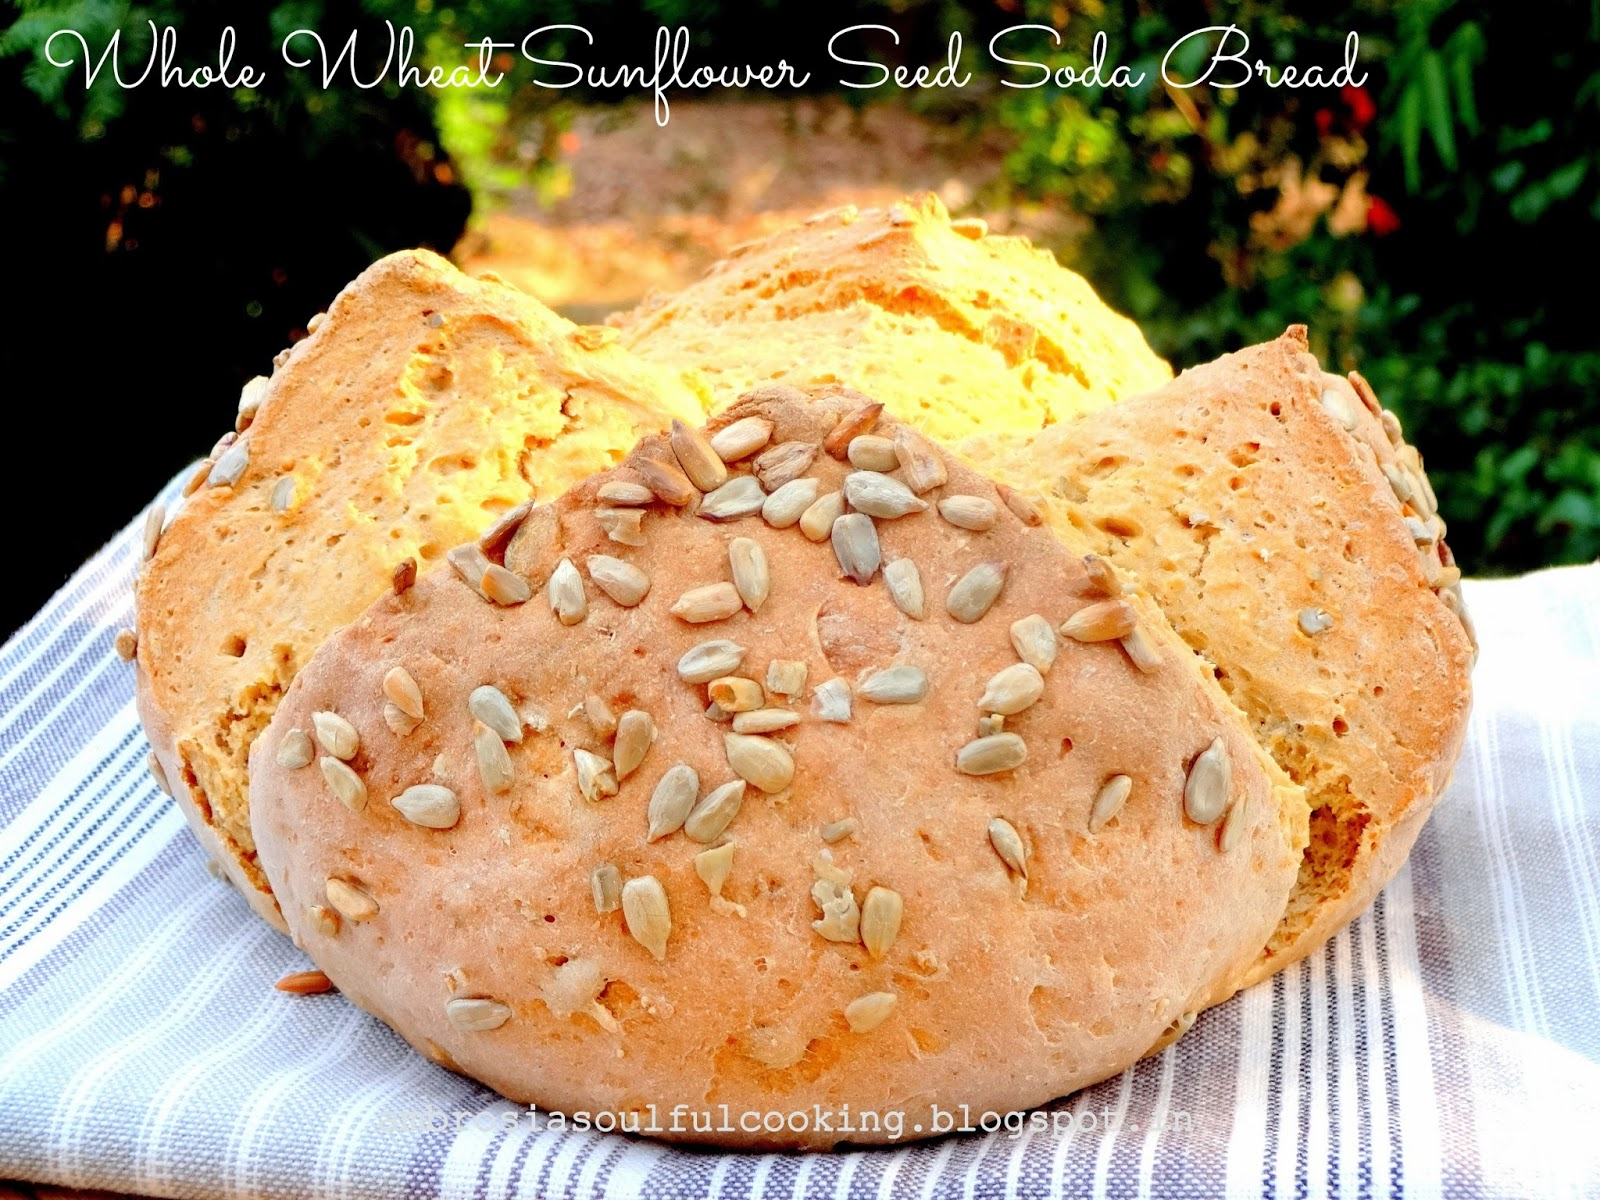 AMBROSIA: Whole Wheat Sunflower Seed Soda Bread